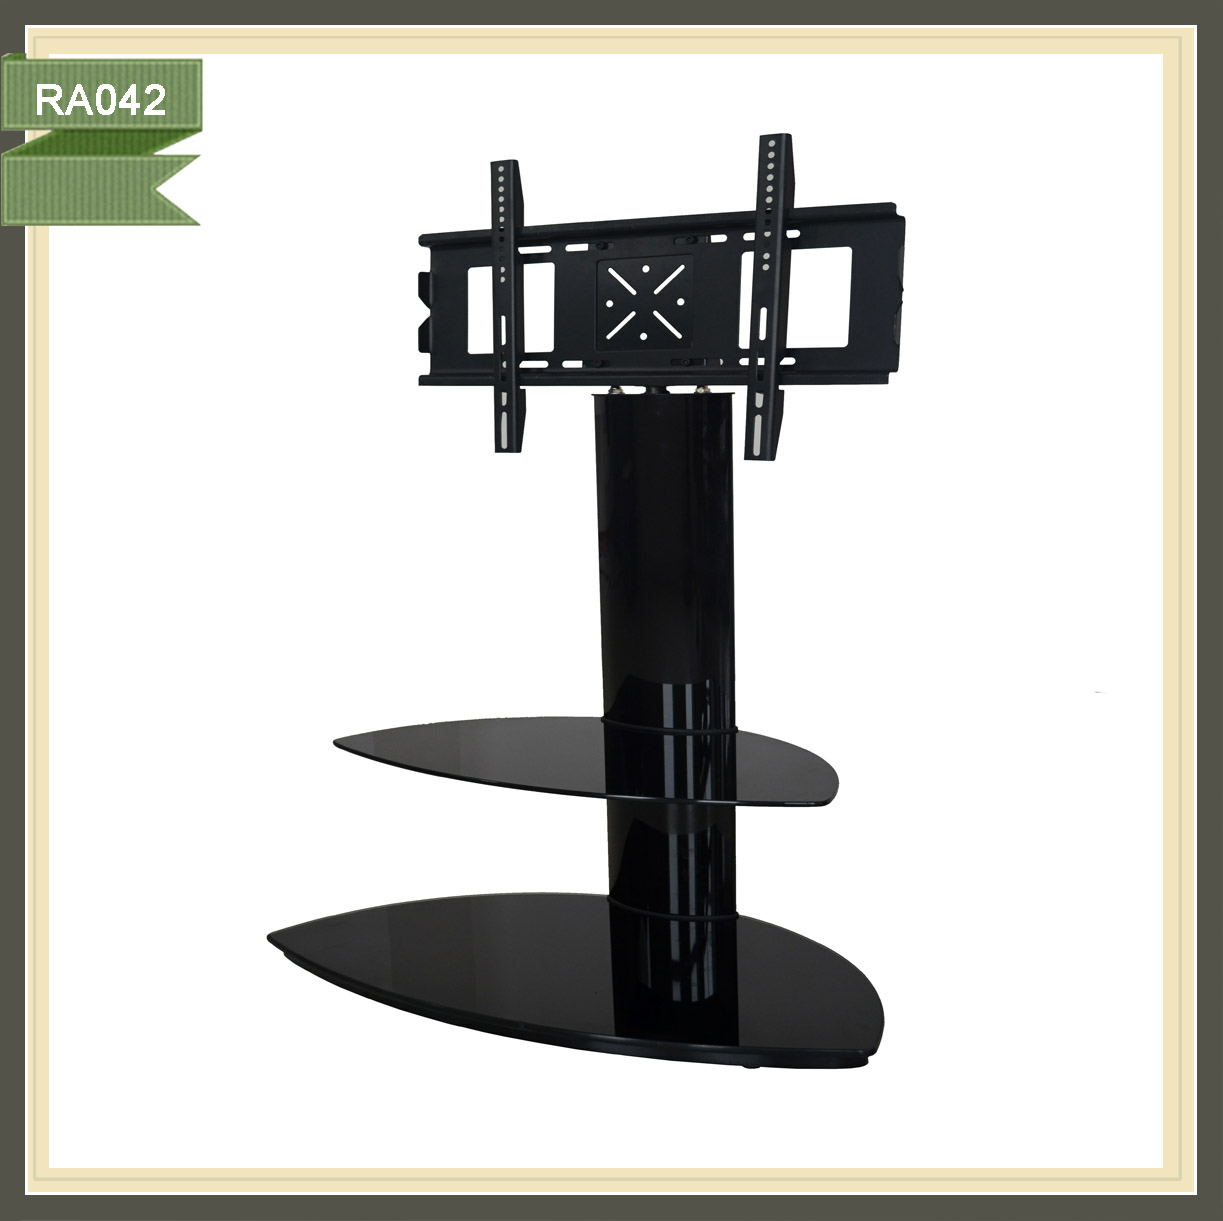 Modern simple contemporary upright advertising stylish 360 degree rotating tv stands